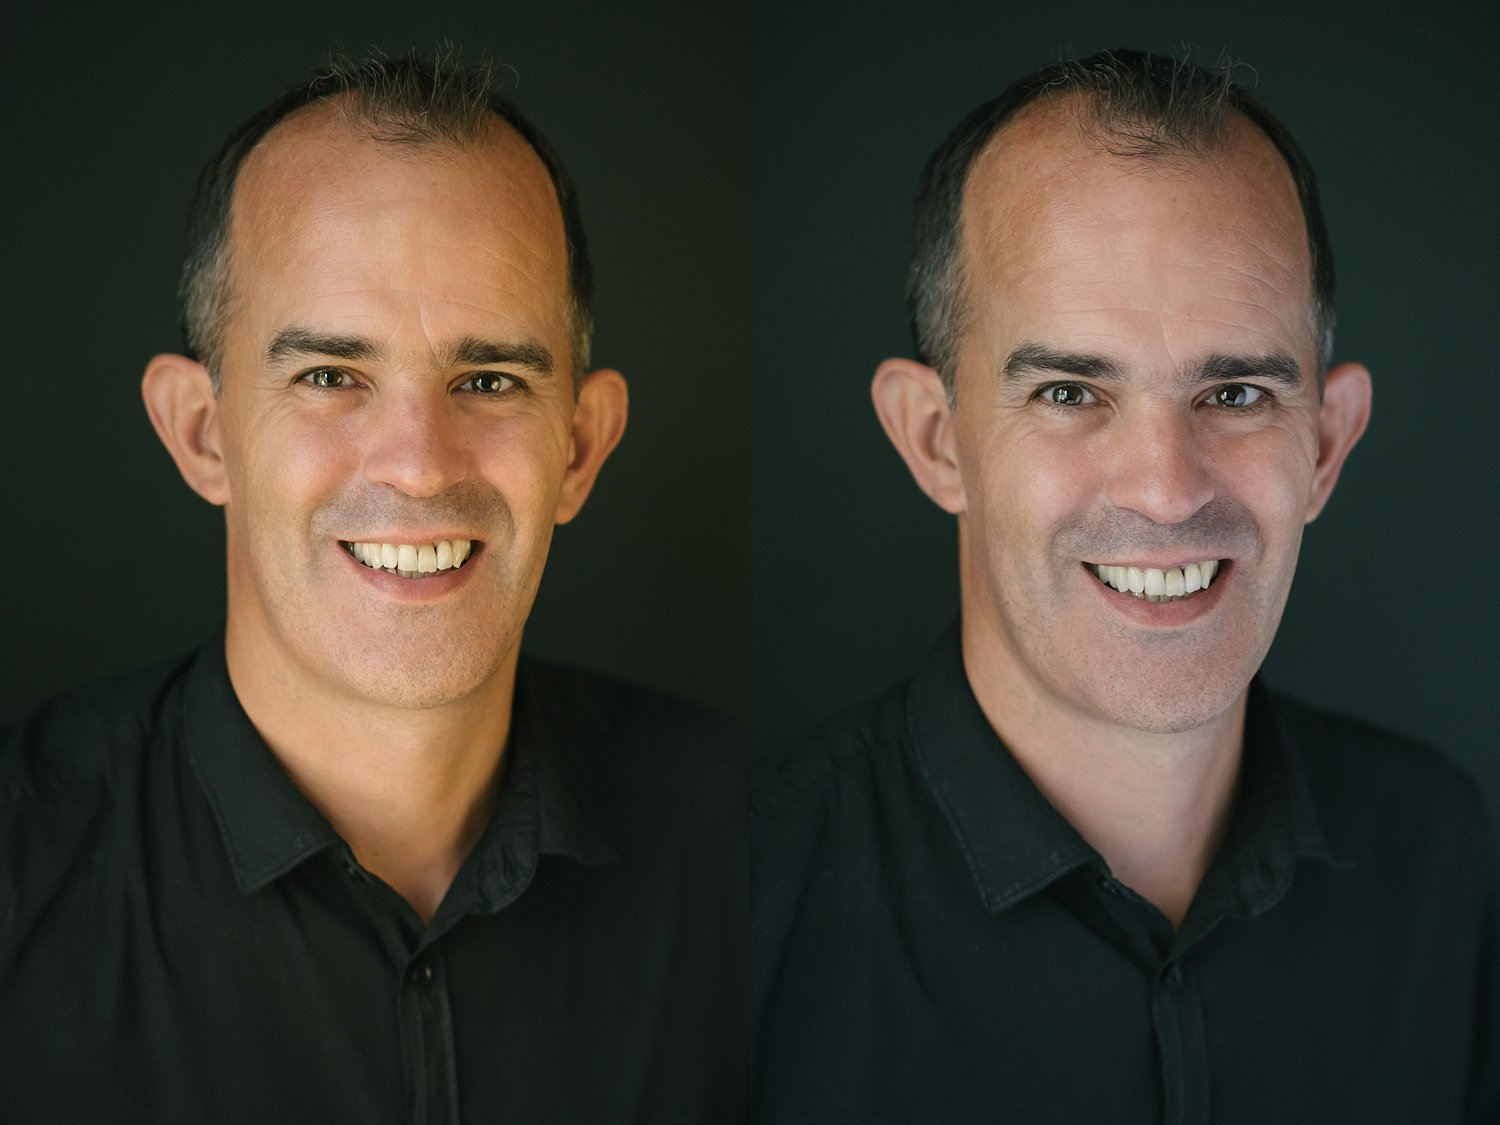 Comparison between reflectors and diffusers for portraits